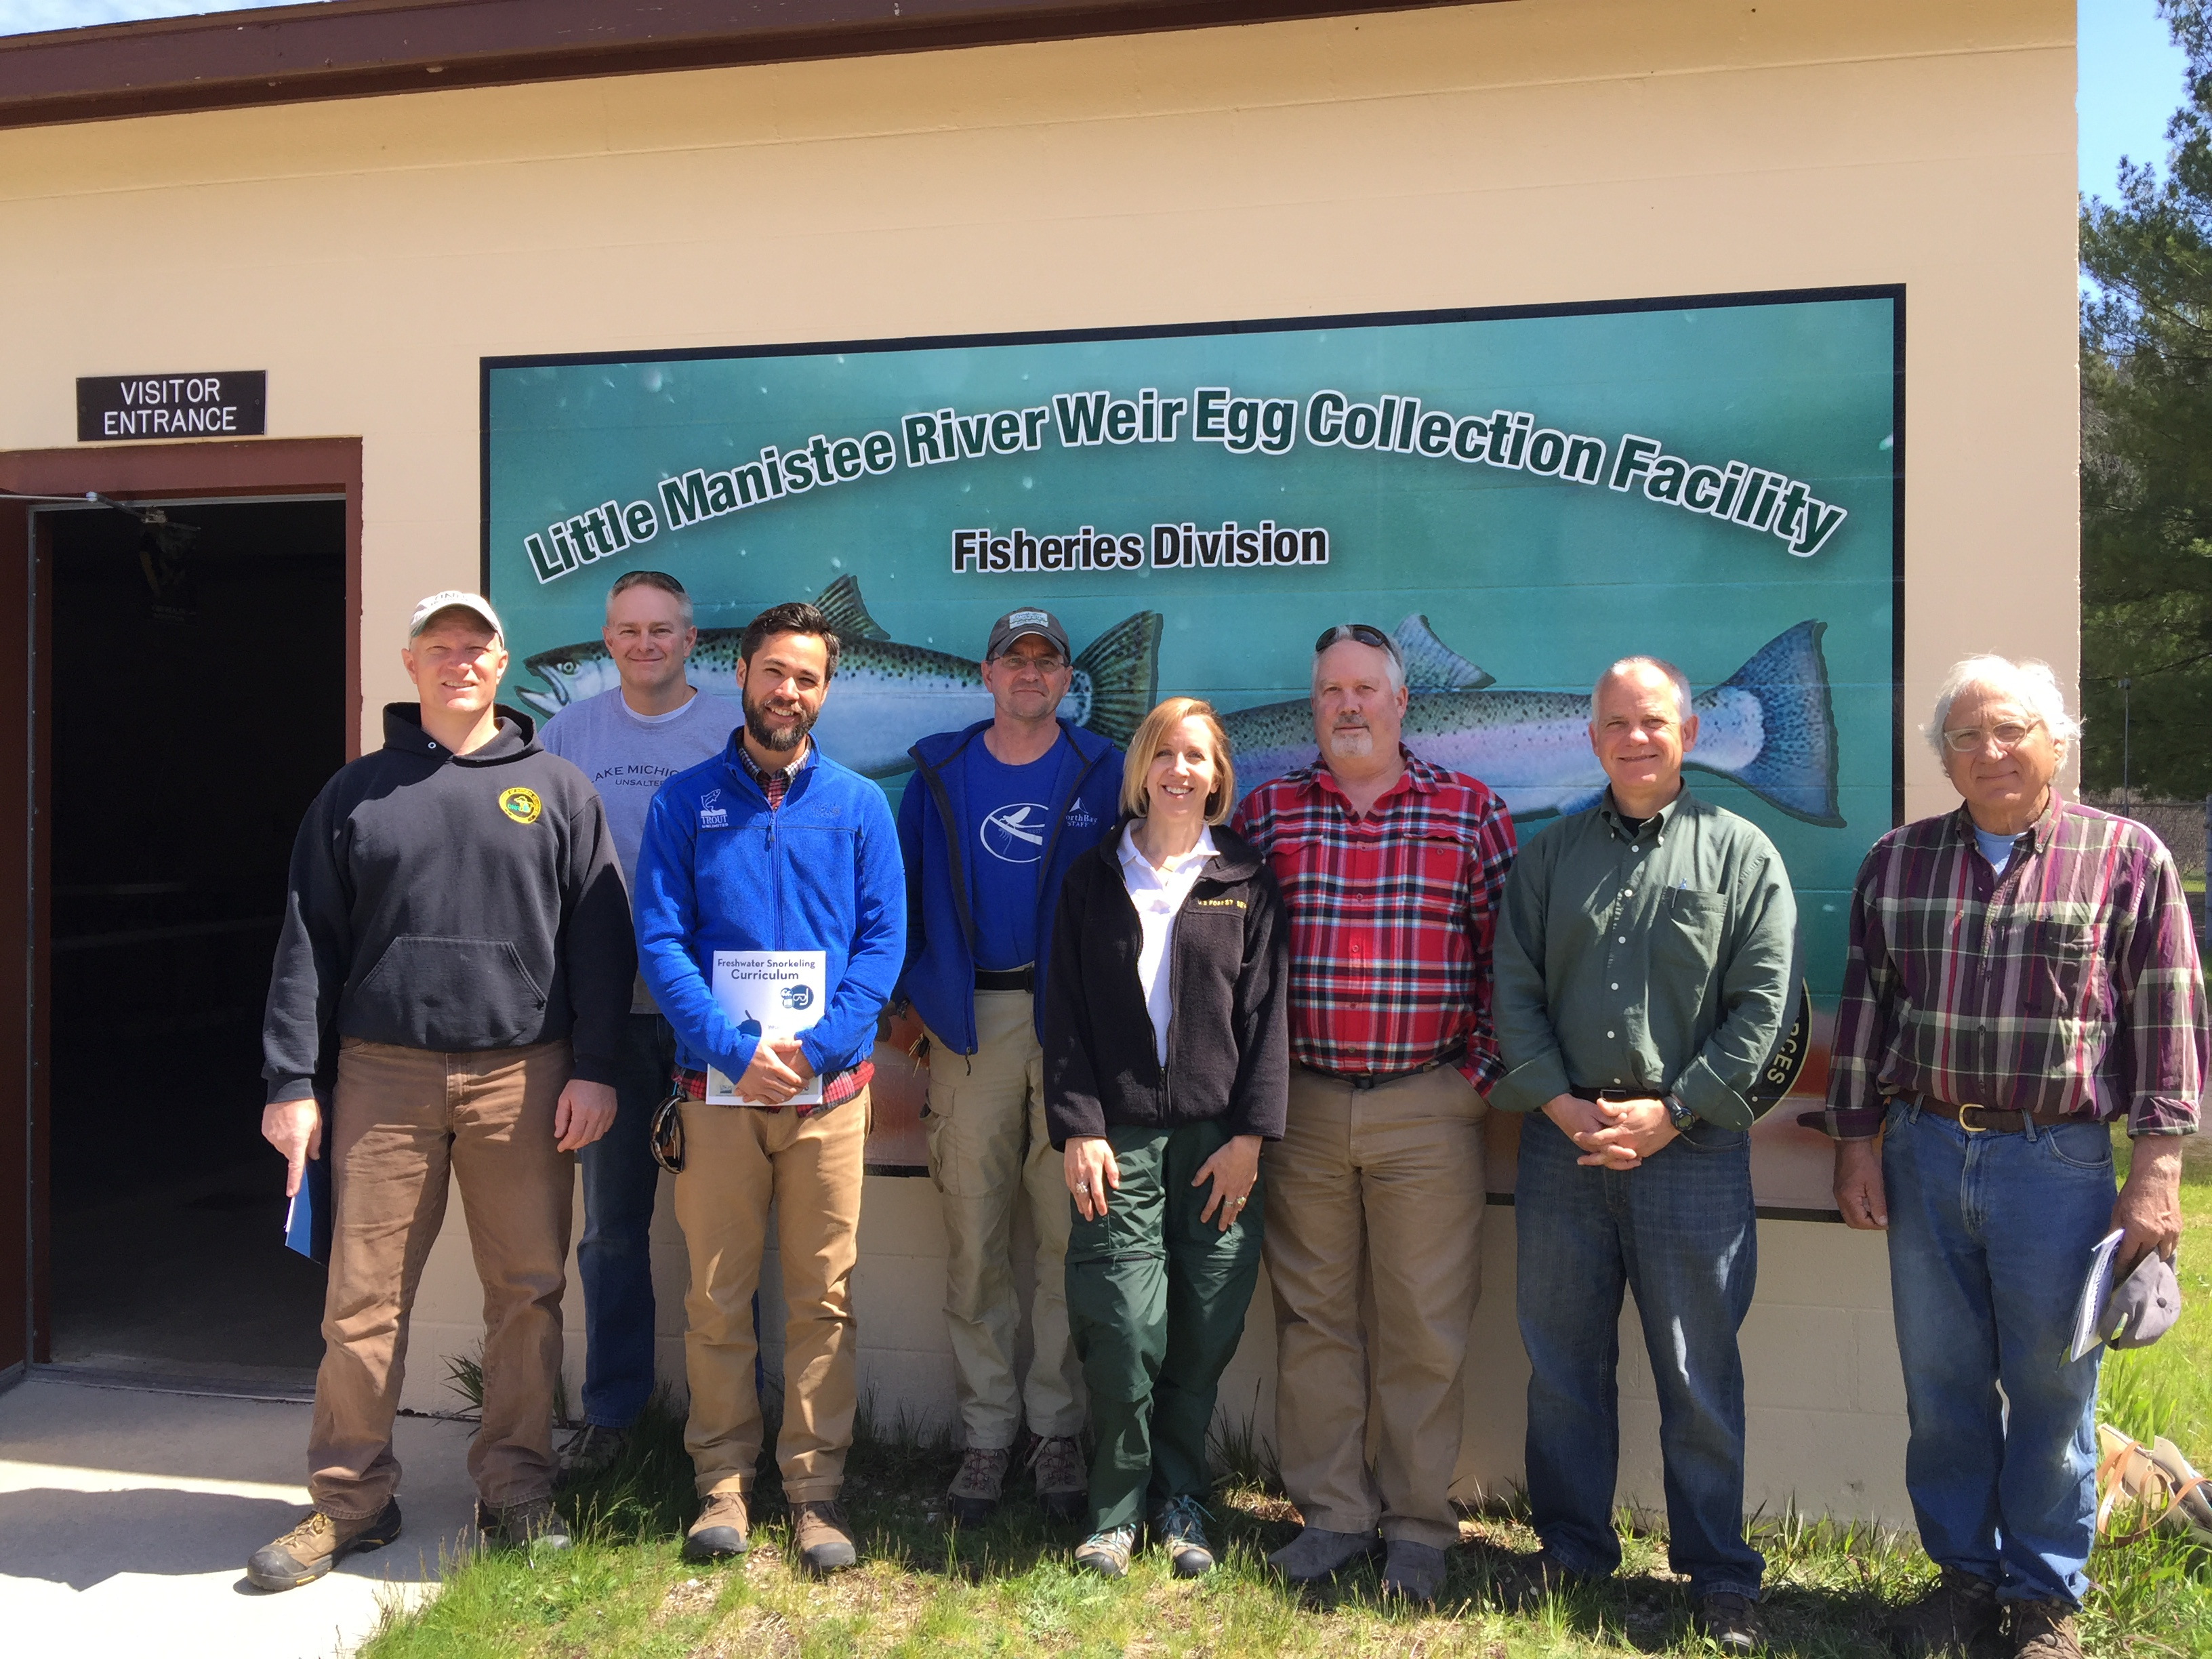 Group photo showing DNR staff, Forest Service staff, North Bay, and the Spirit of the Bear Club members